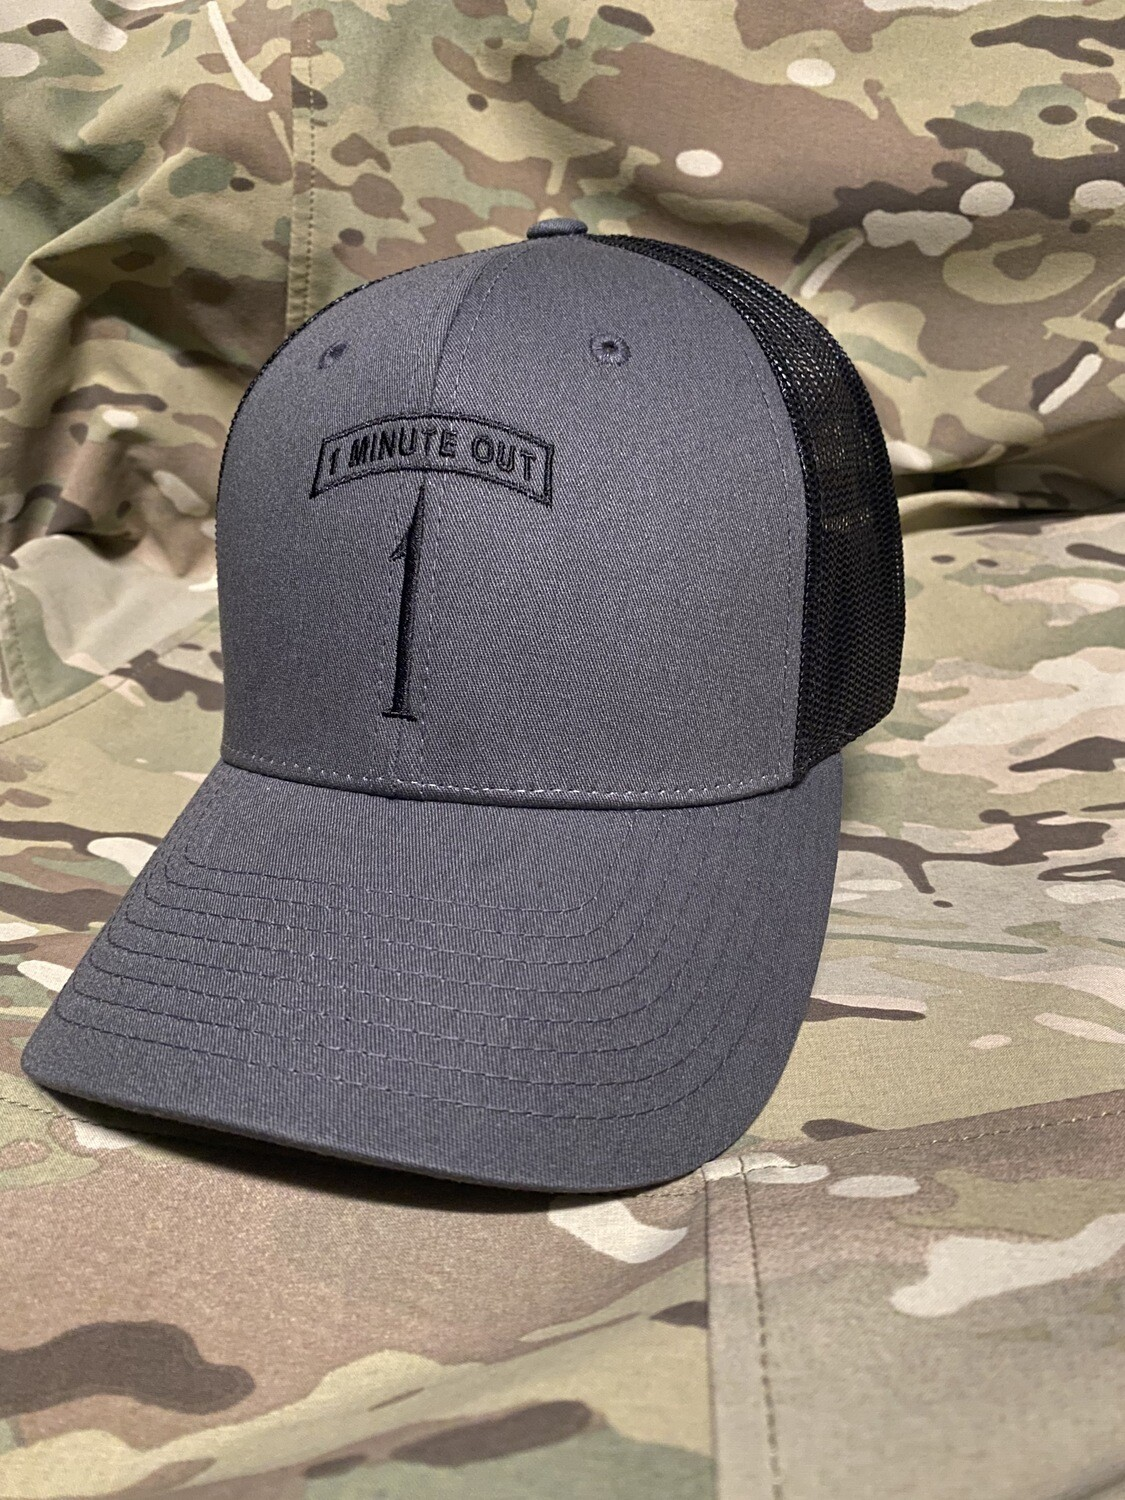 1 Minute Out Hat Charcoal/BLK 112